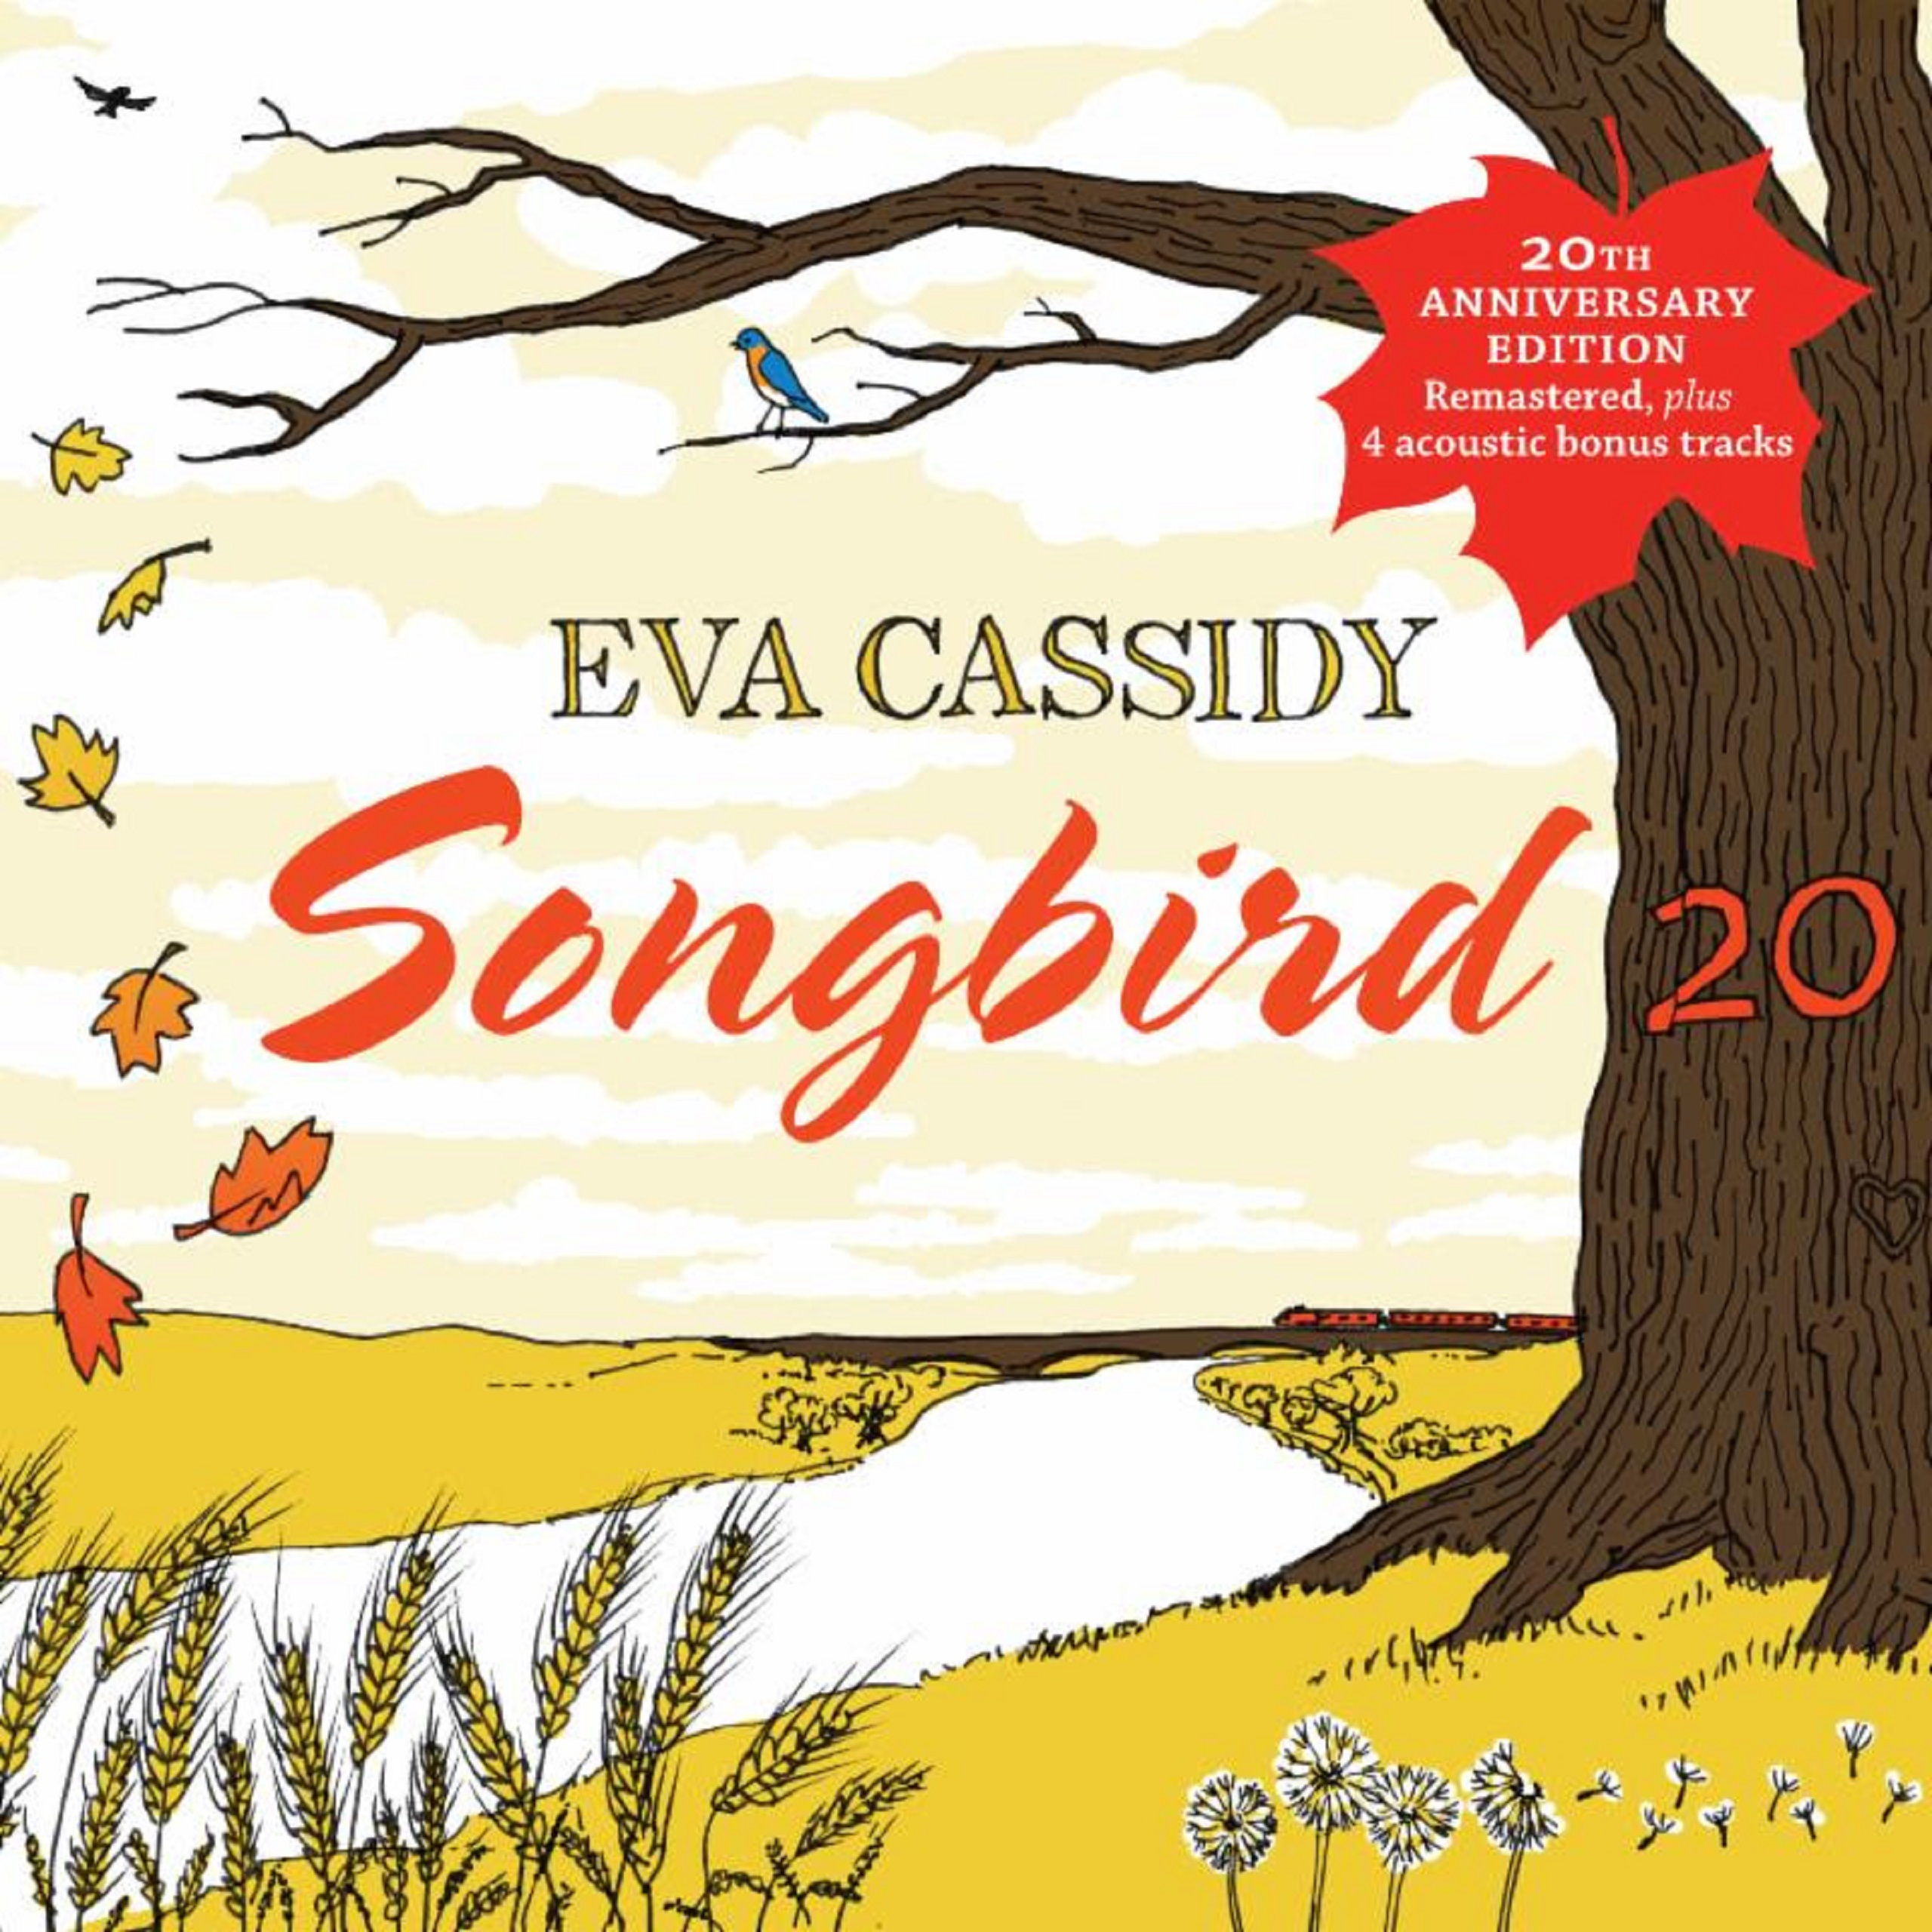 20th Anniversary of Eva Cassidy's Ground-Breaking 'Songbird' Album